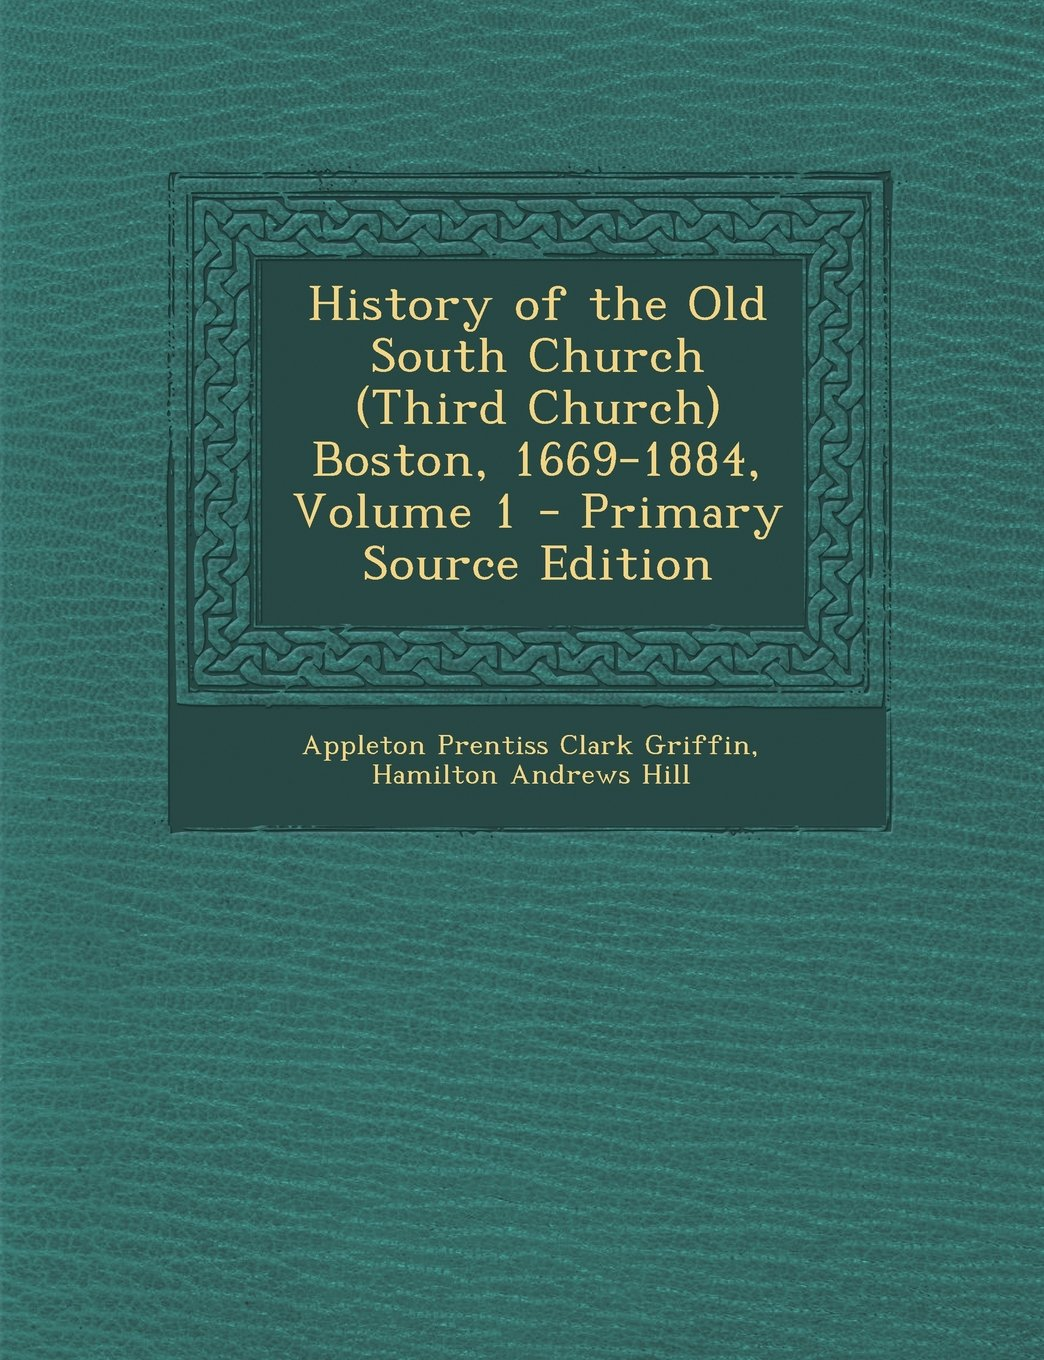 Download History of the Old South Church (Third Church) Boston, 1669-1884, Volume 1 PDF